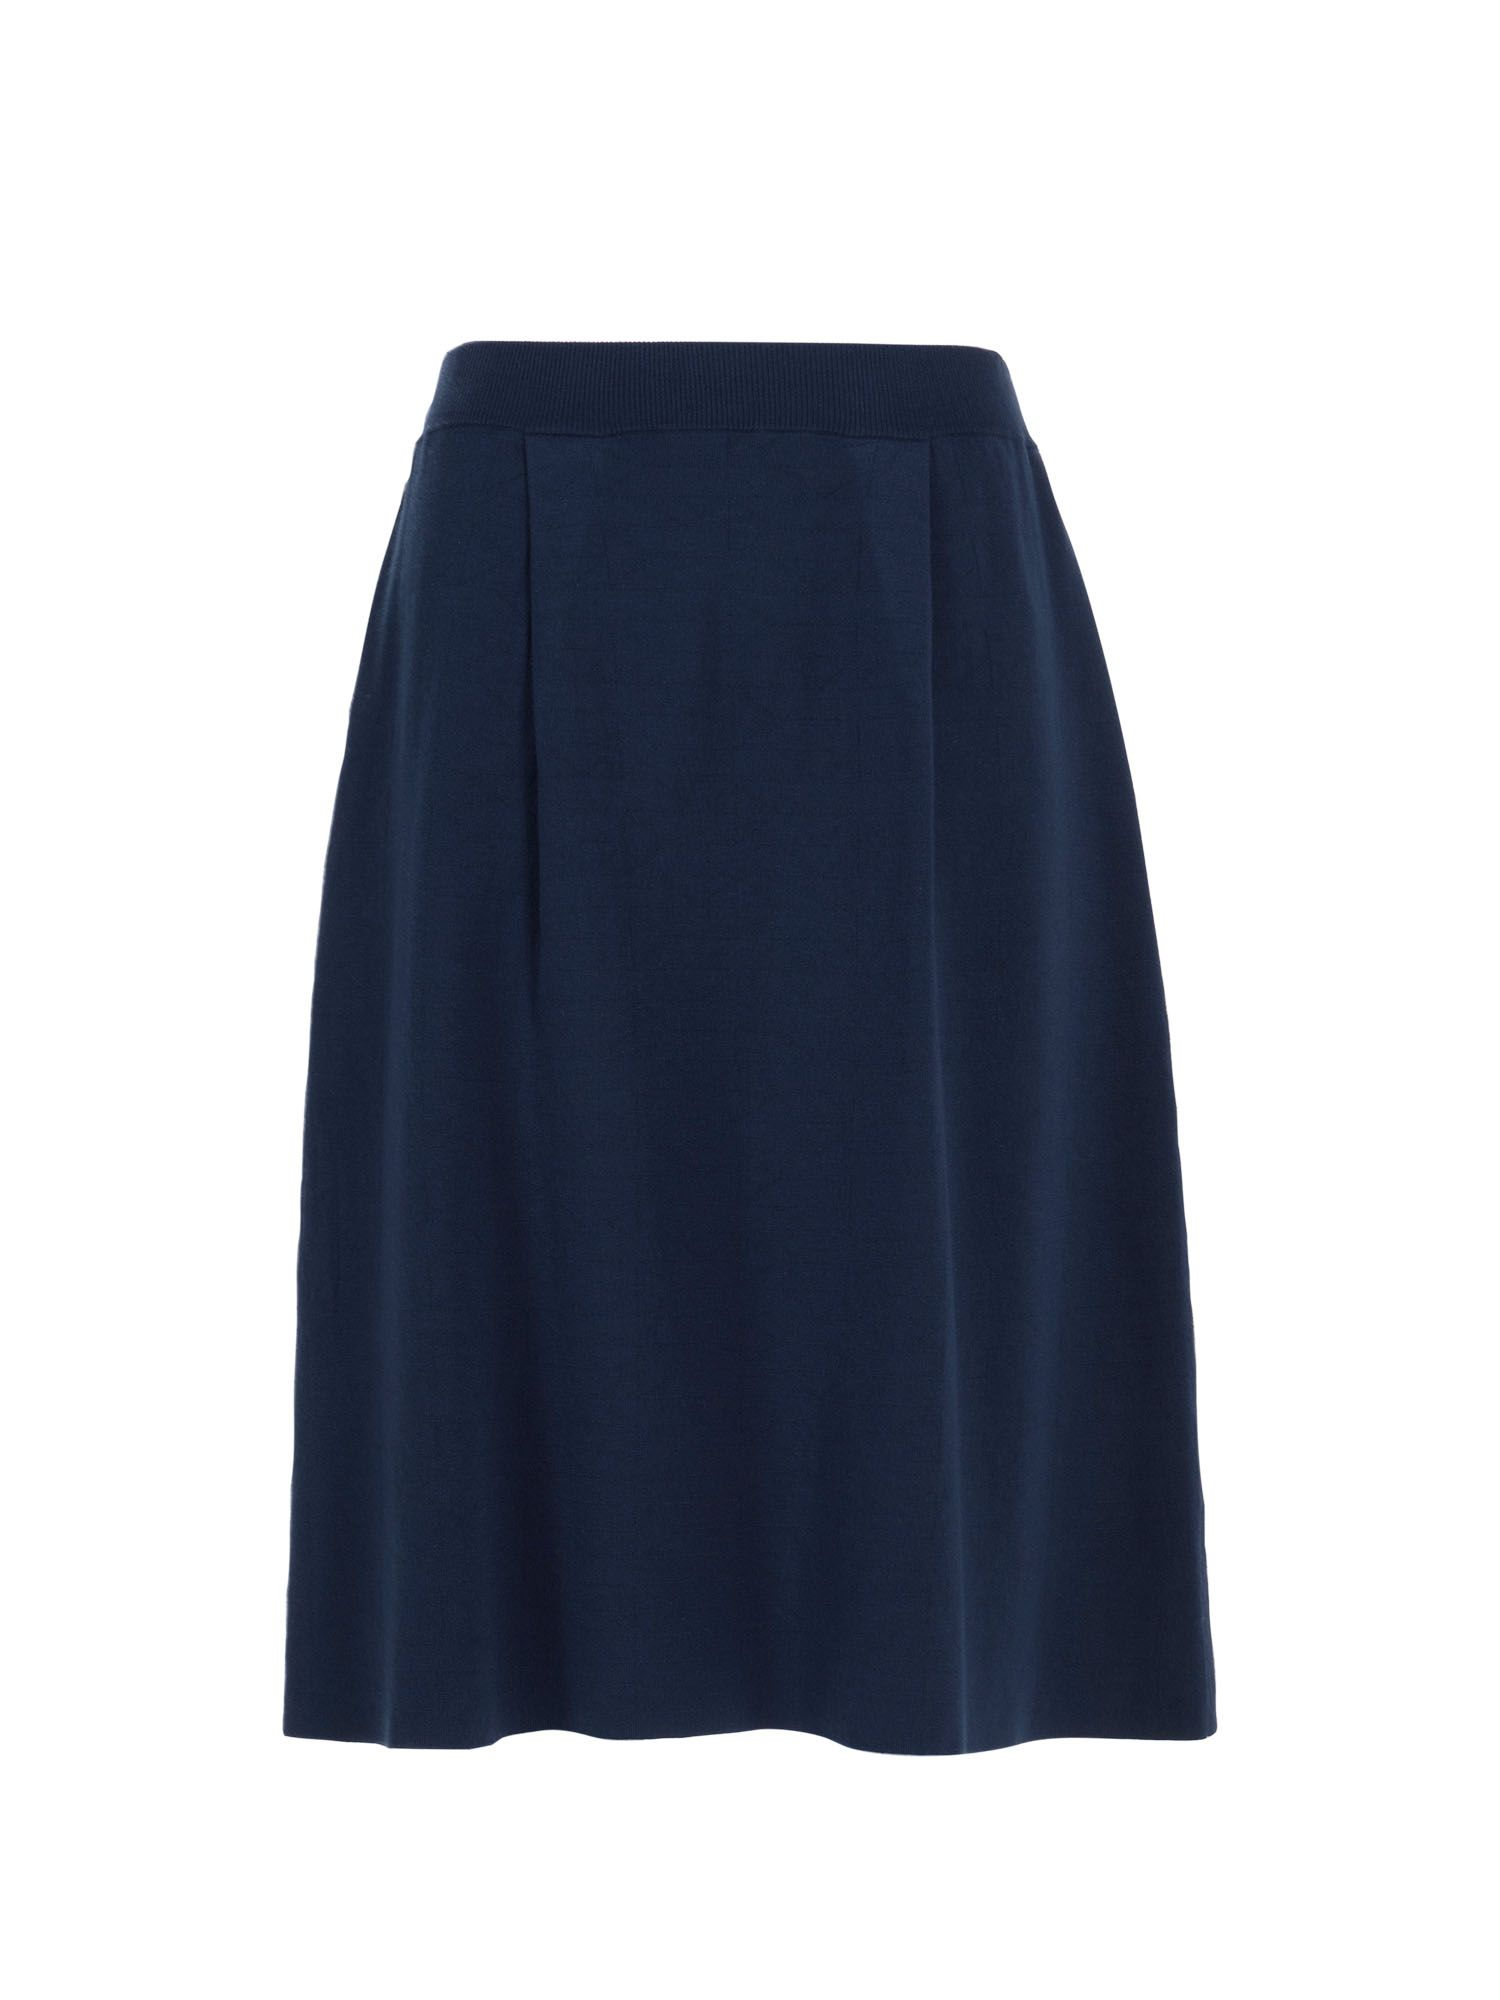 Stefanel Geometric Pattern Skirt, Blue